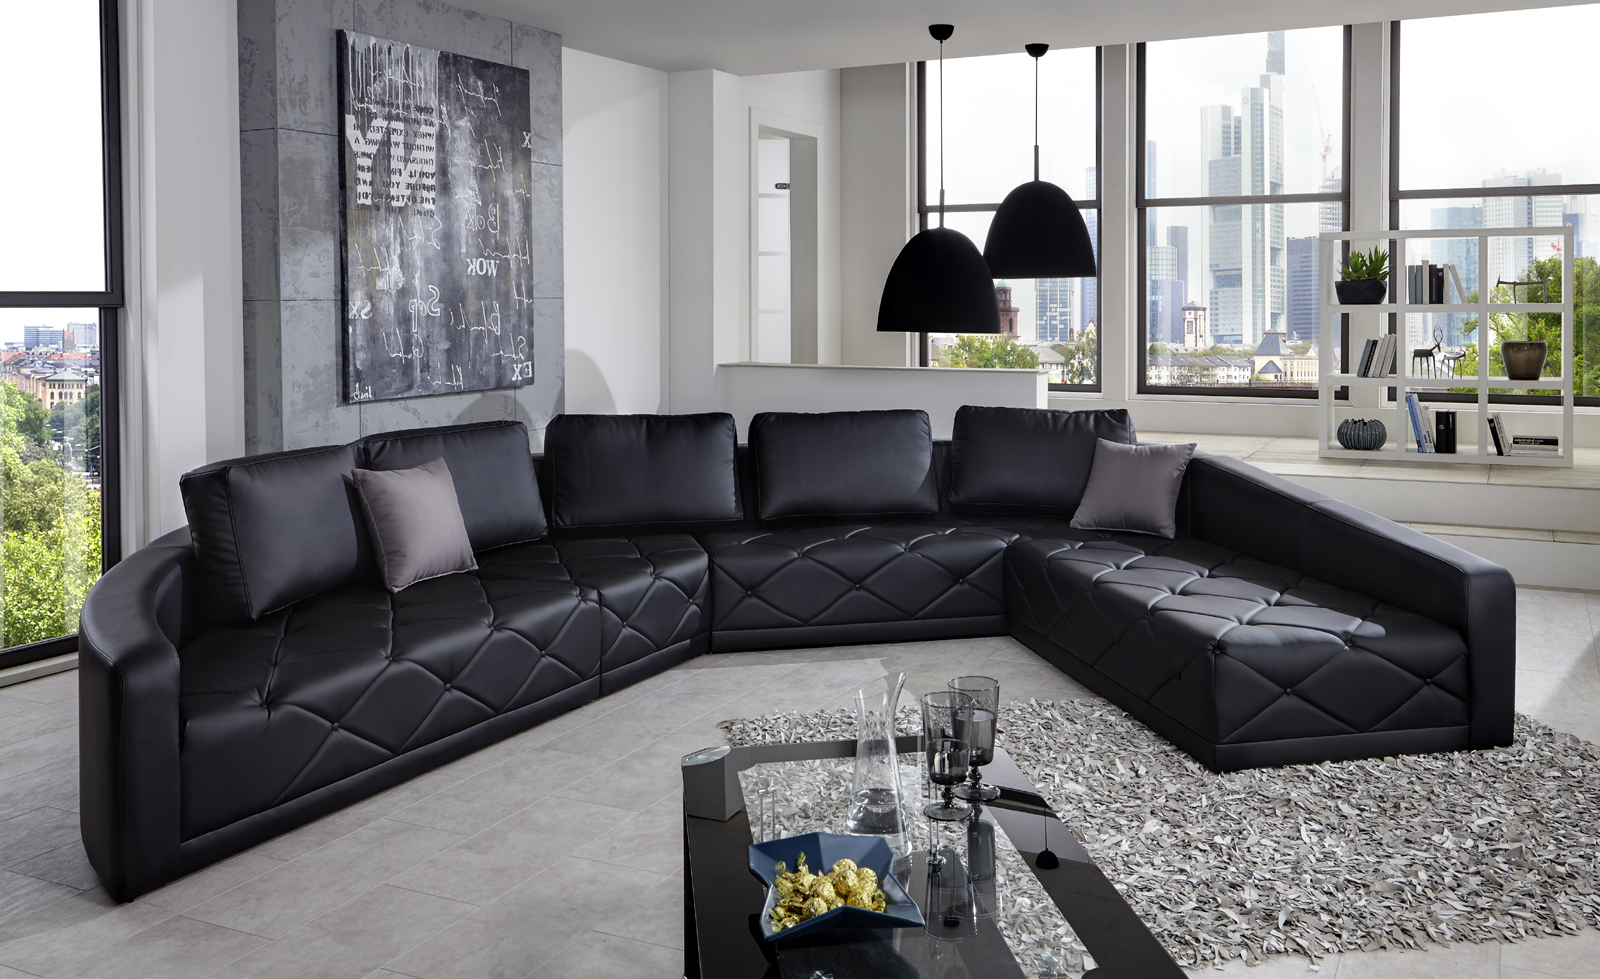 sam design couch schwarz wohnlandschaft nero 380 x 290 cm. Black Bedroom Furniture Sets. Home Design Ideas